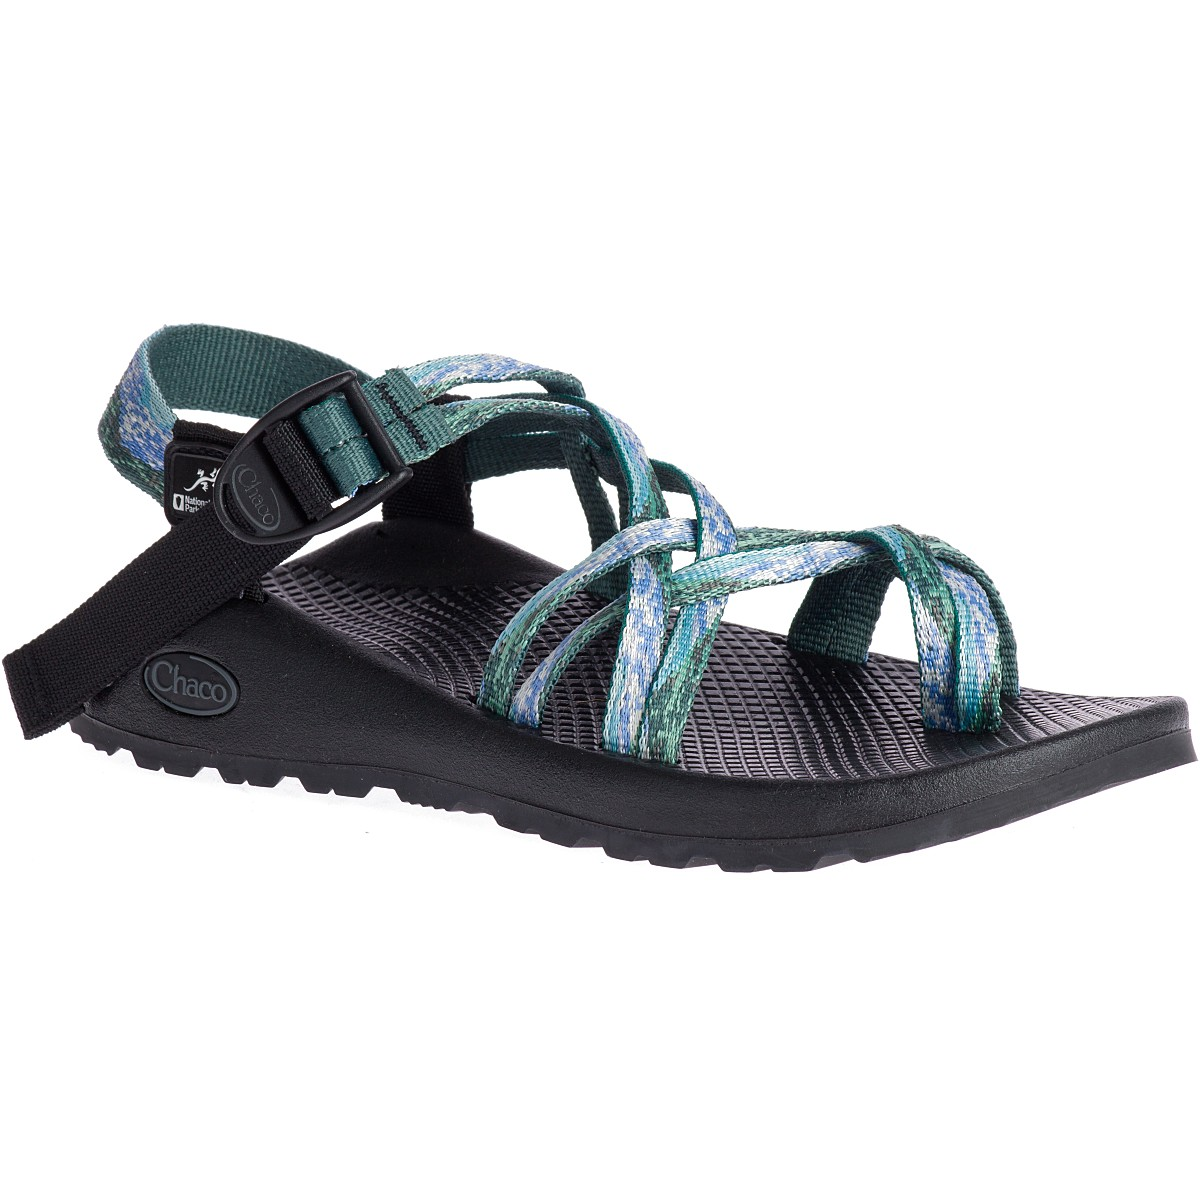 d89768ece882 Chaco Zx2 Classic Usa Womens Sandals - Womens Up to 40% Off w  Free S H — 5  models